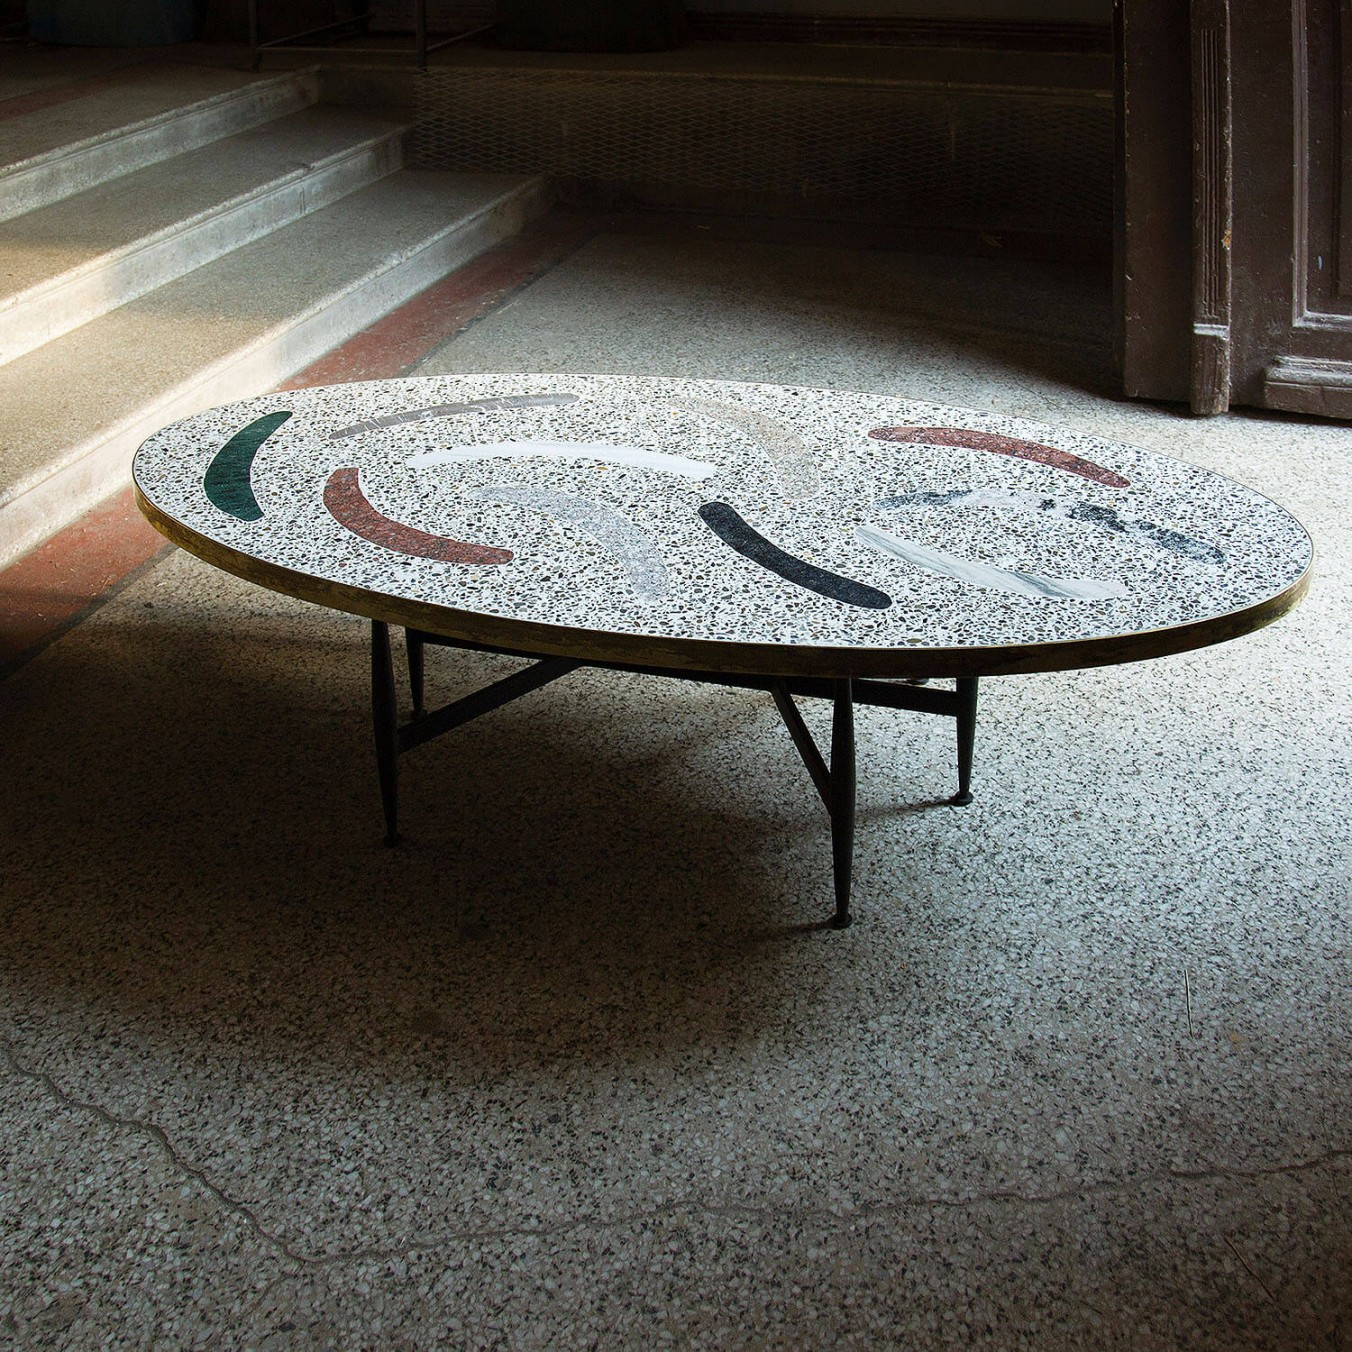 Magic Stone Boomerang Coffee Table